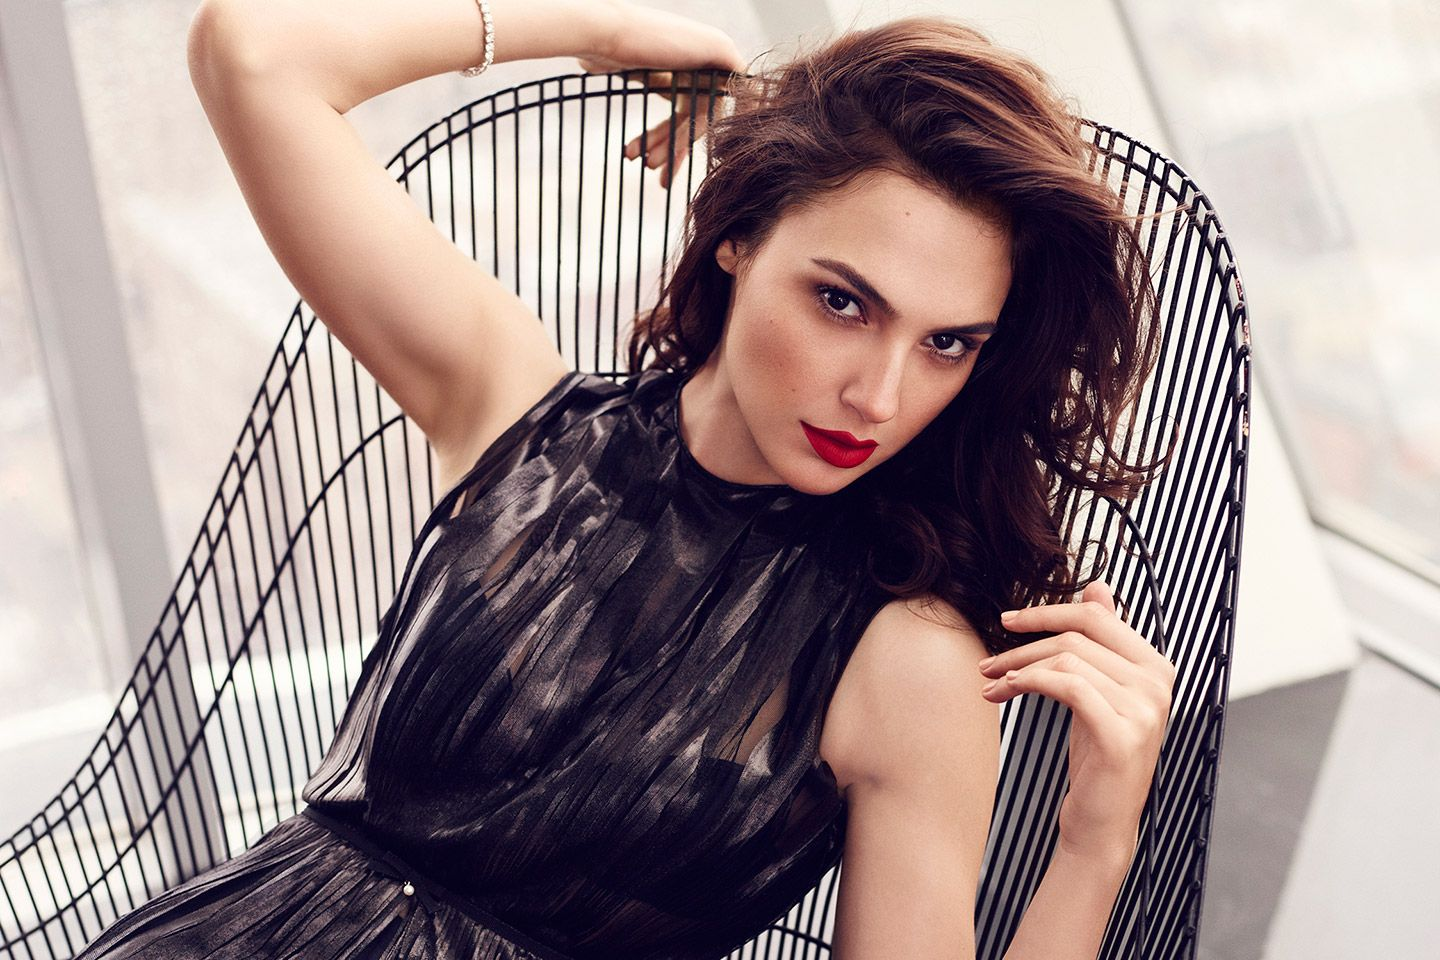 Gal gadot hd images get free top quality gal gadot hd images for gal gadot hd images get free top quality gal gadot hd images for your desktop pc background ios or android mobile phones at wowhdbackgrounds voltagebd Images